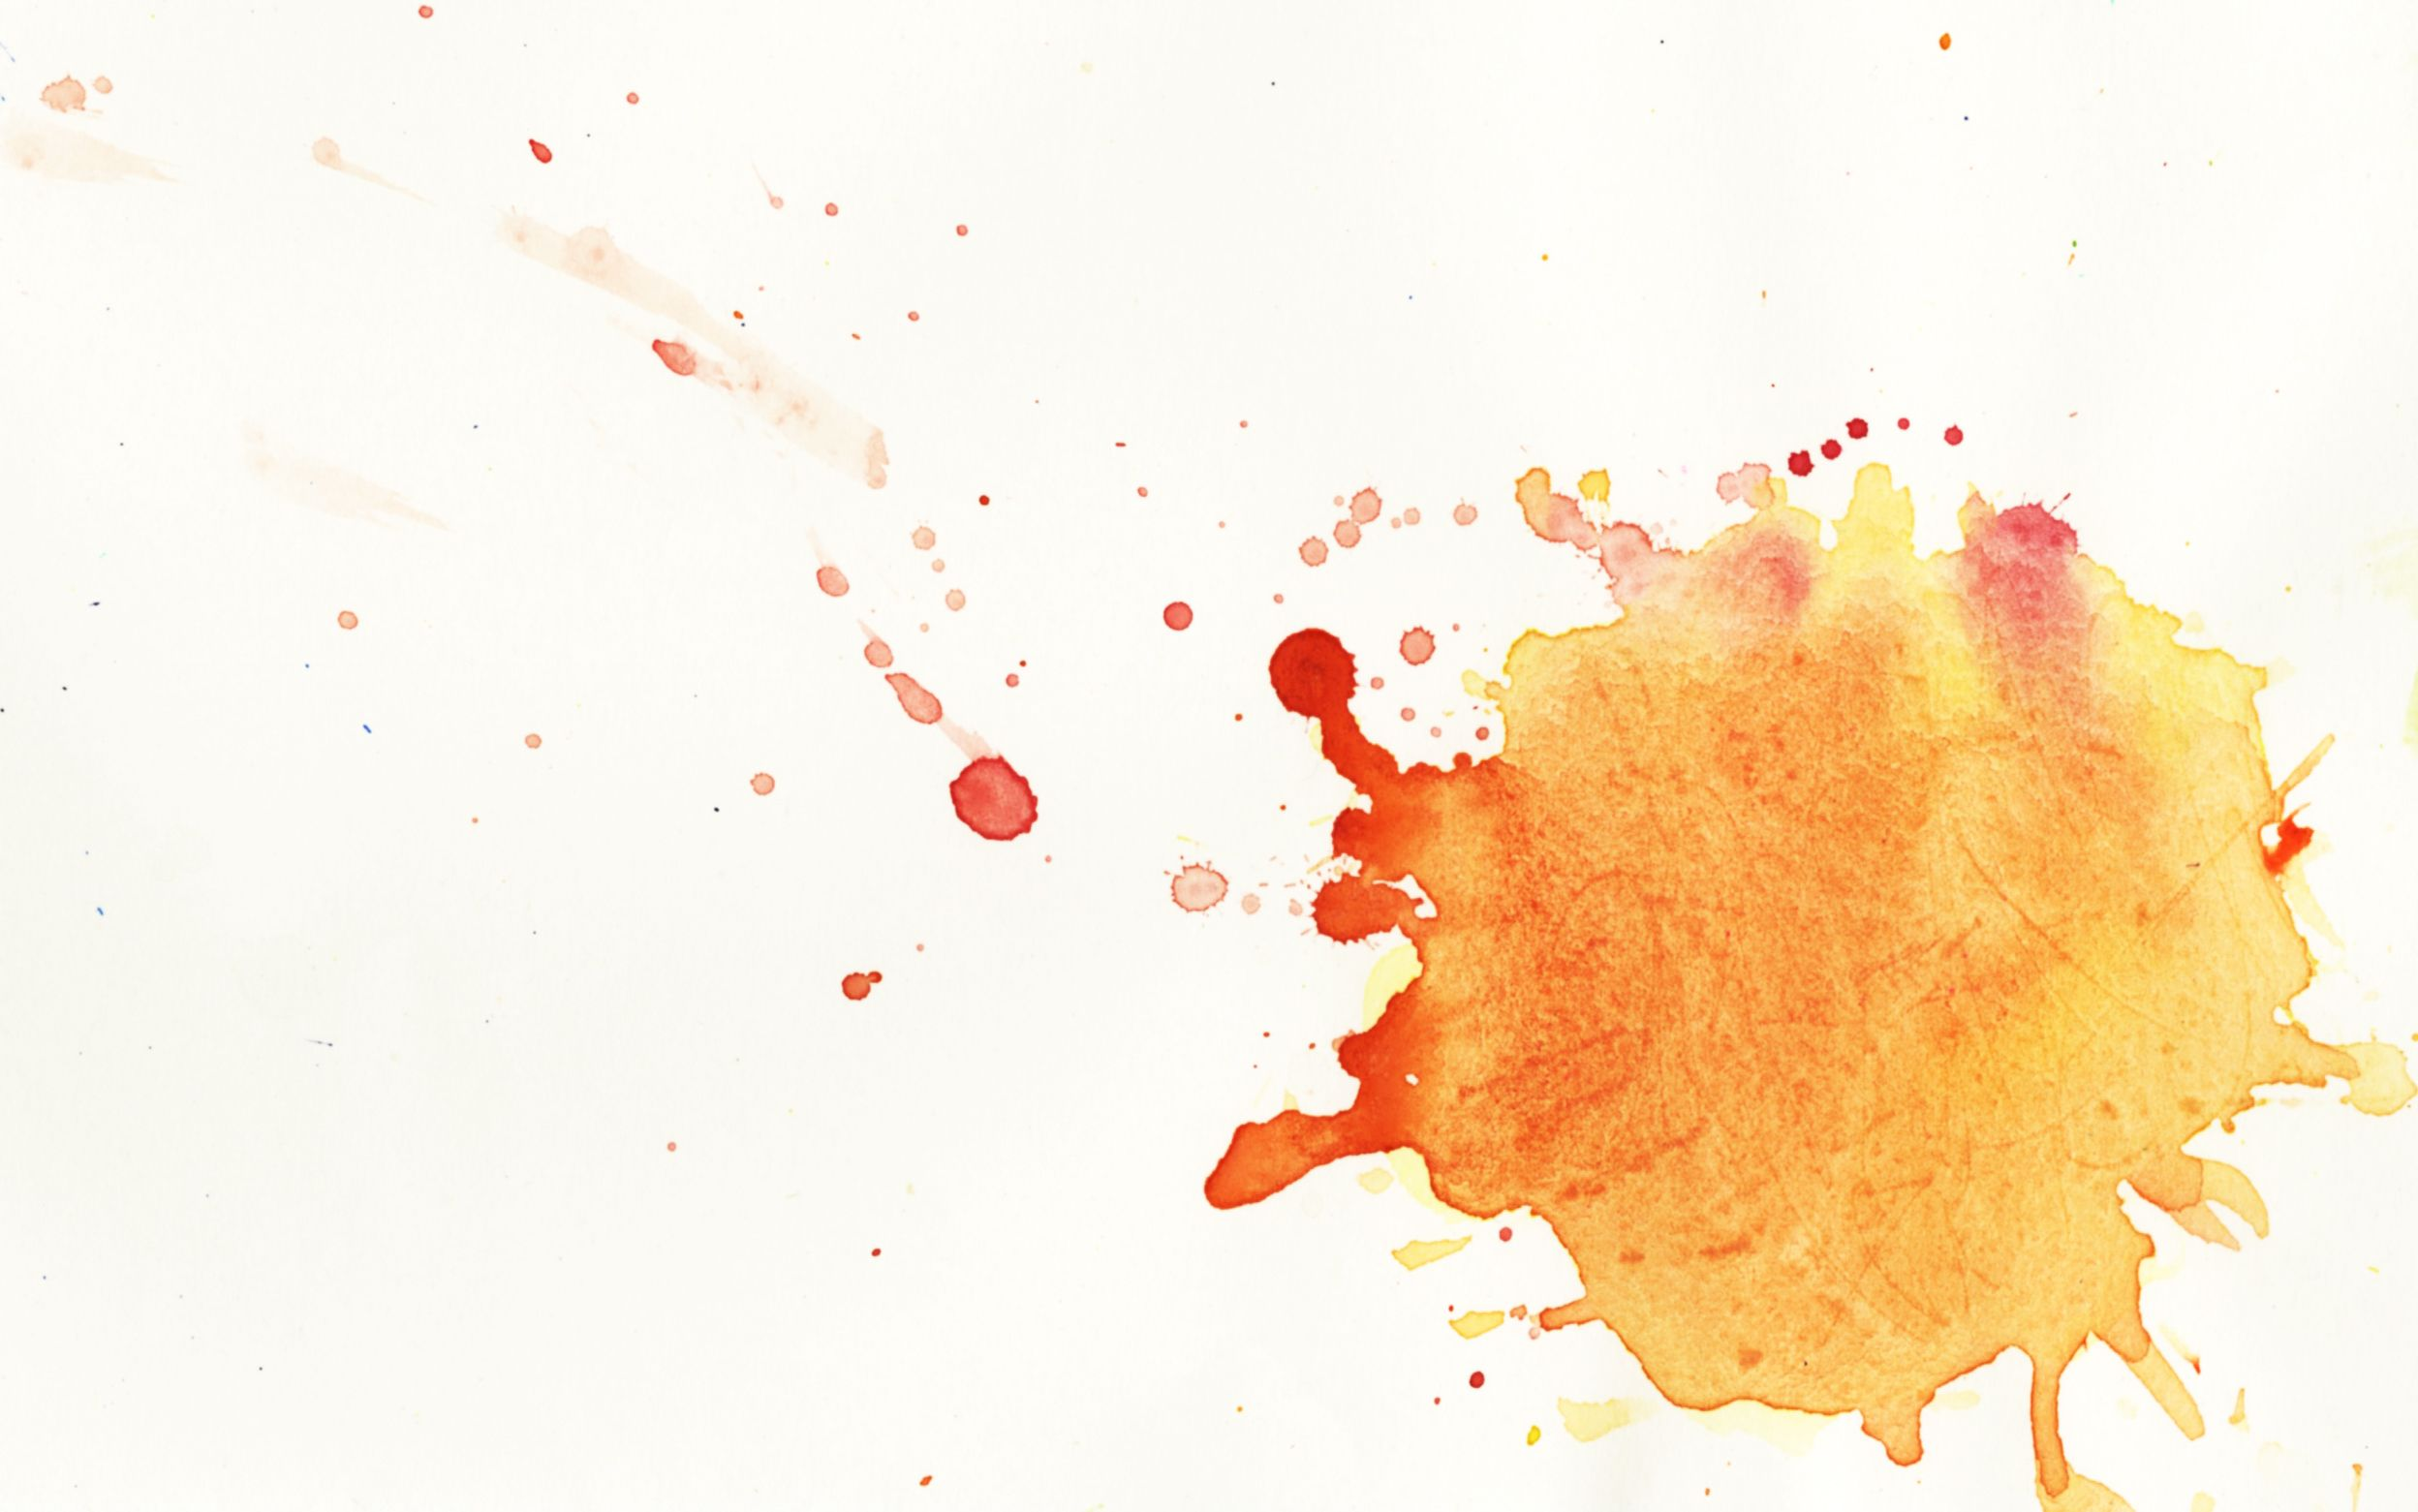 Watercolor Splatter Transparent Watercolor Splash Watercolor